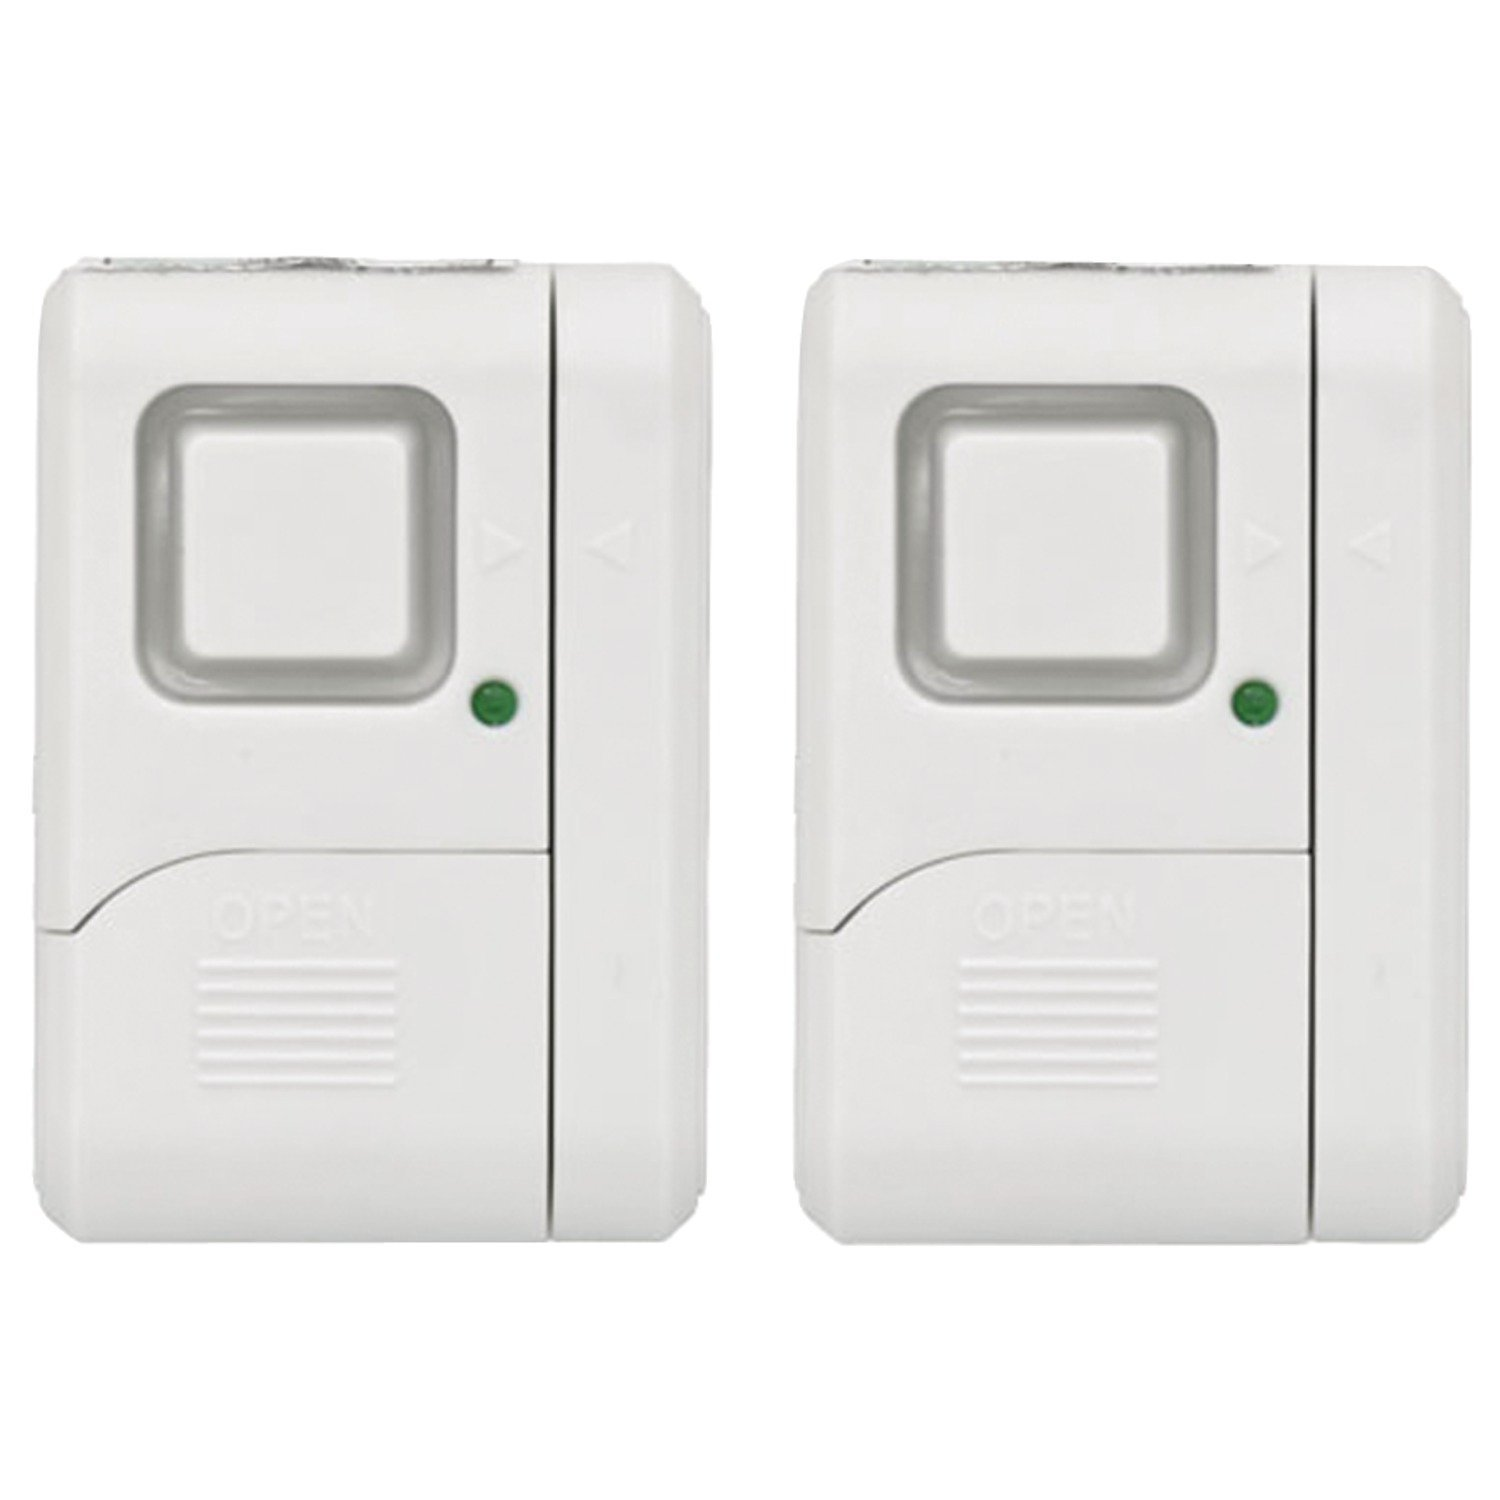 GE Personal Security Window Door Alarm 2 Pack DIY Home Protection Burglar Alert Wireless Alarm Off Chime Alarm Easy Installation Ideal for Home Garage Apartment Dorm RV and Office 45115